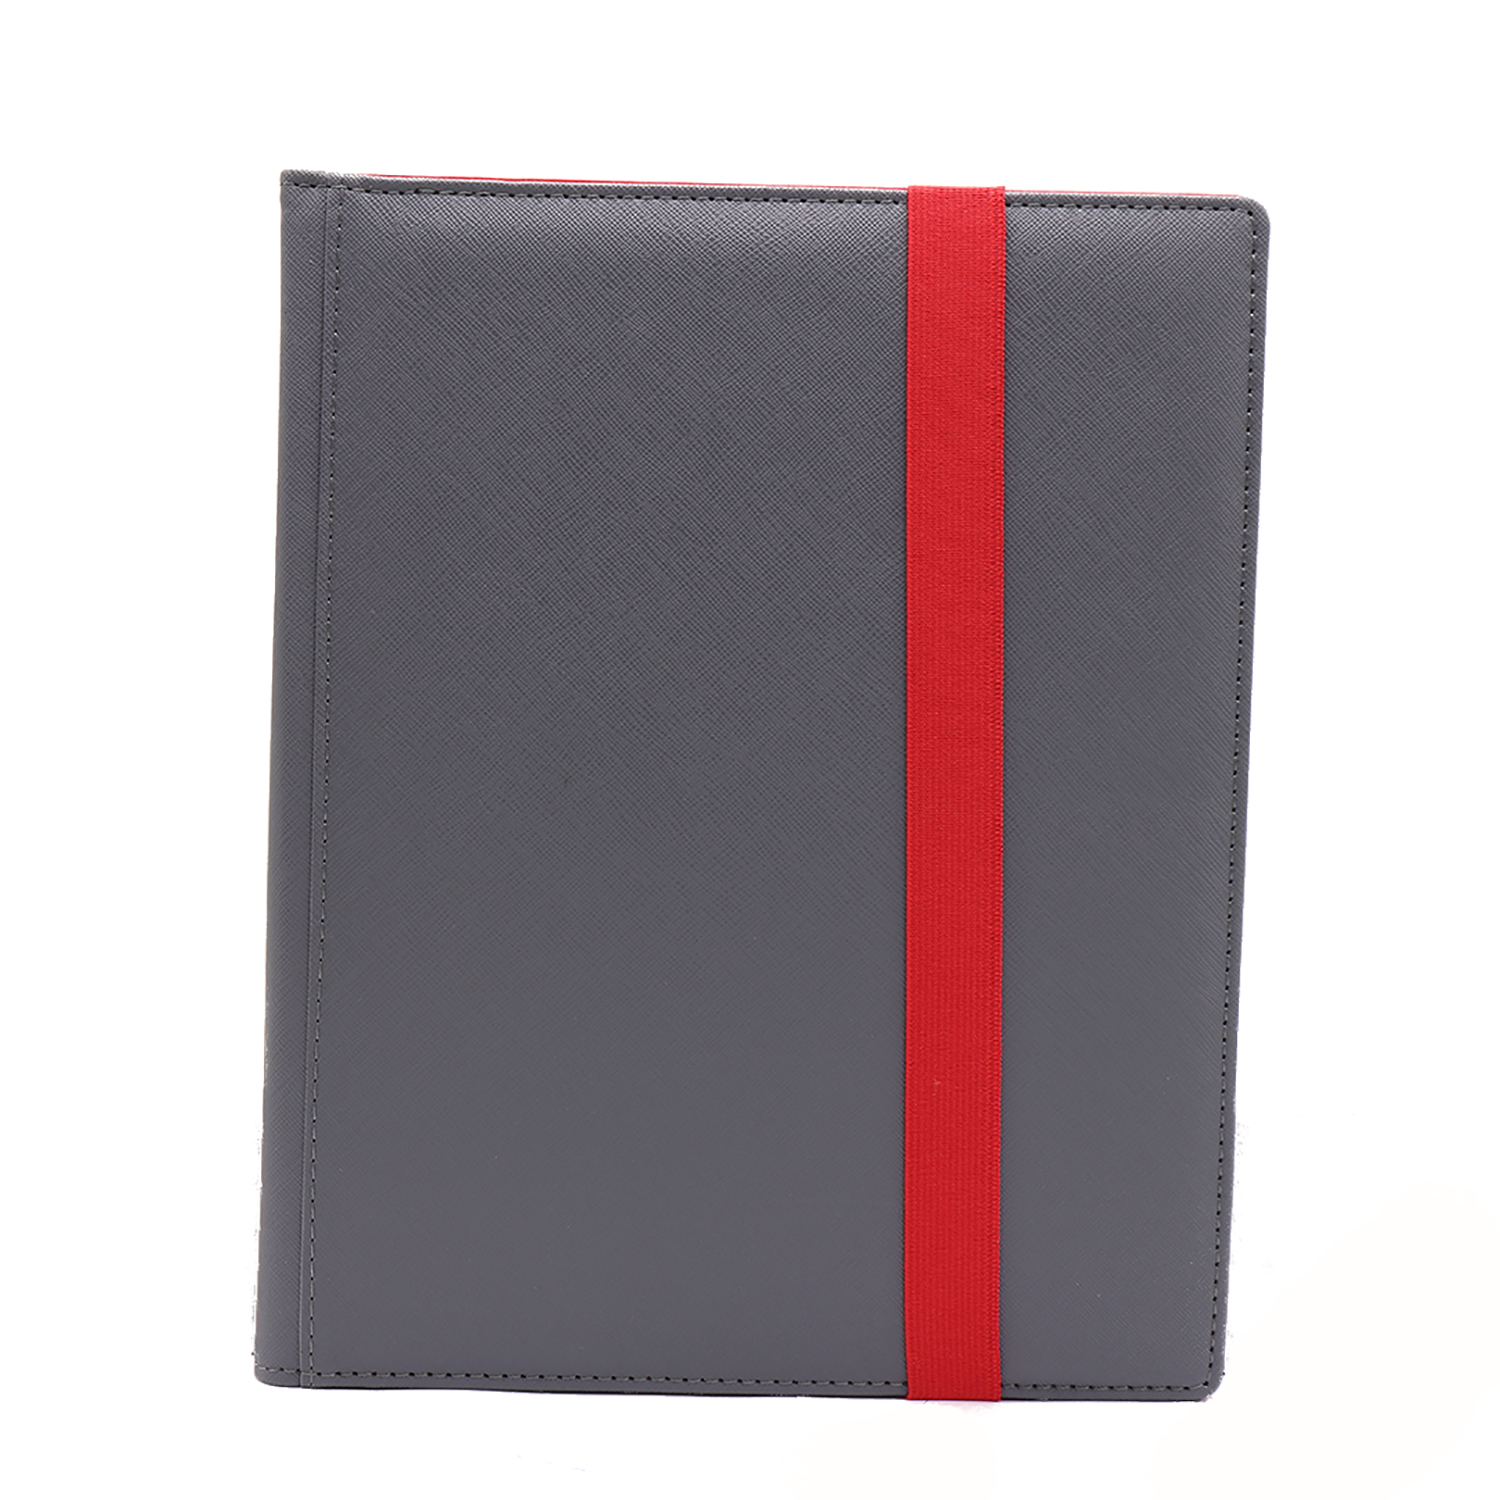 Dex Protection - The Dex Binder 9 - Grey